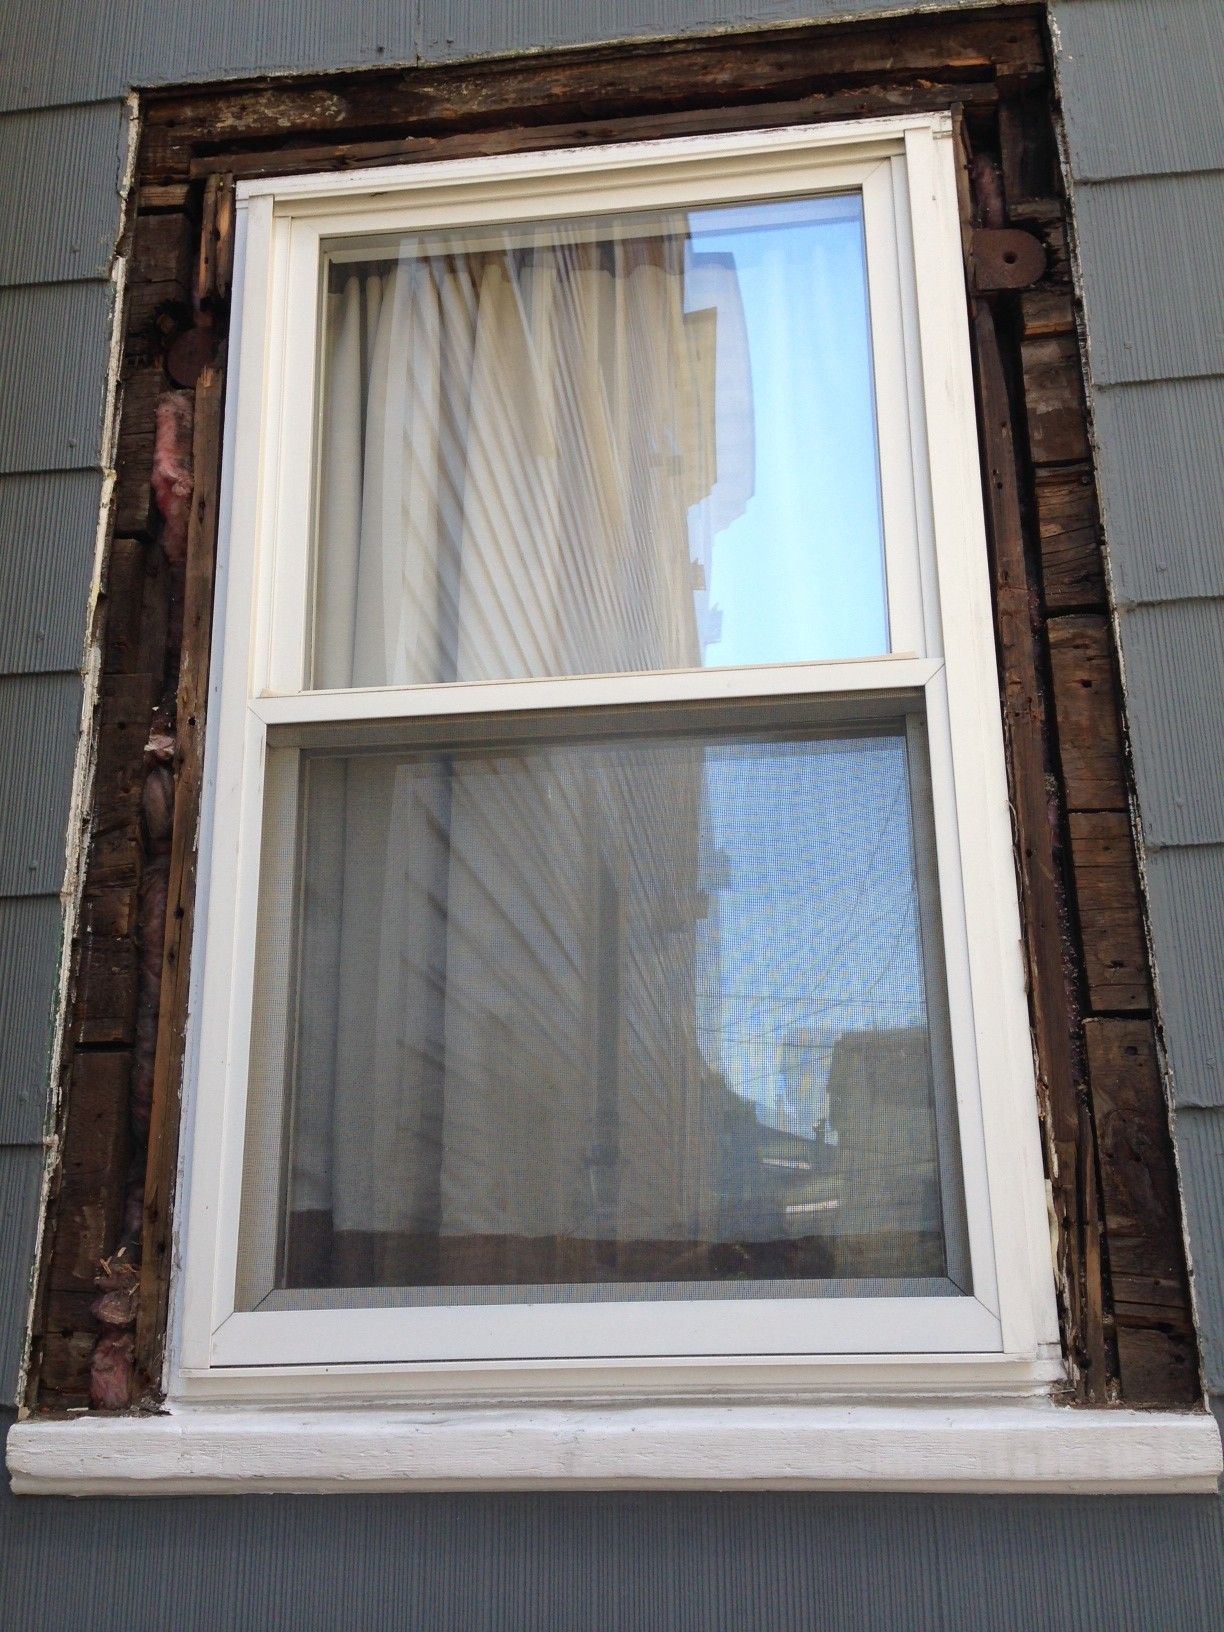 heres how the window looked without any trim note the boards as sheathing